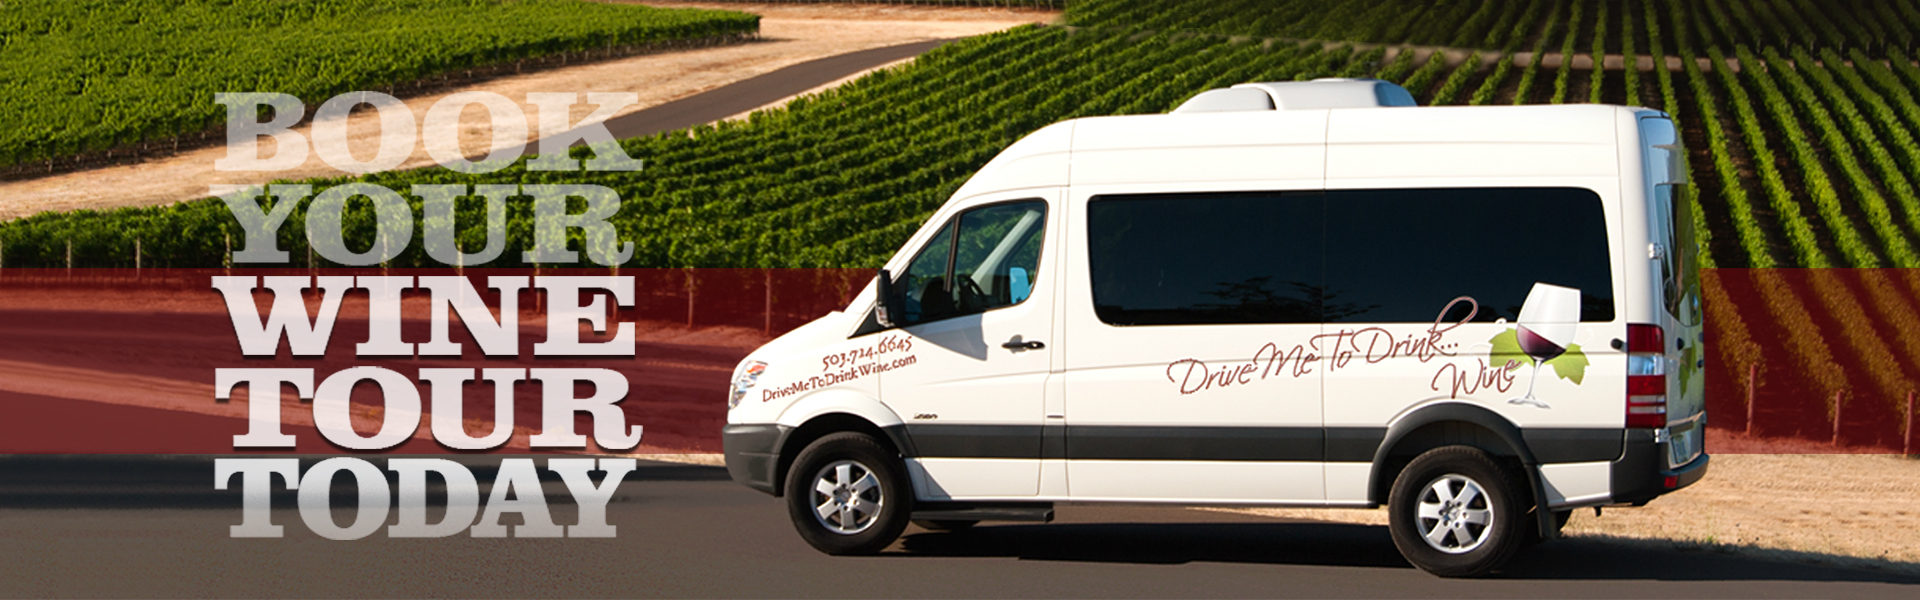 Wine Tours Daily